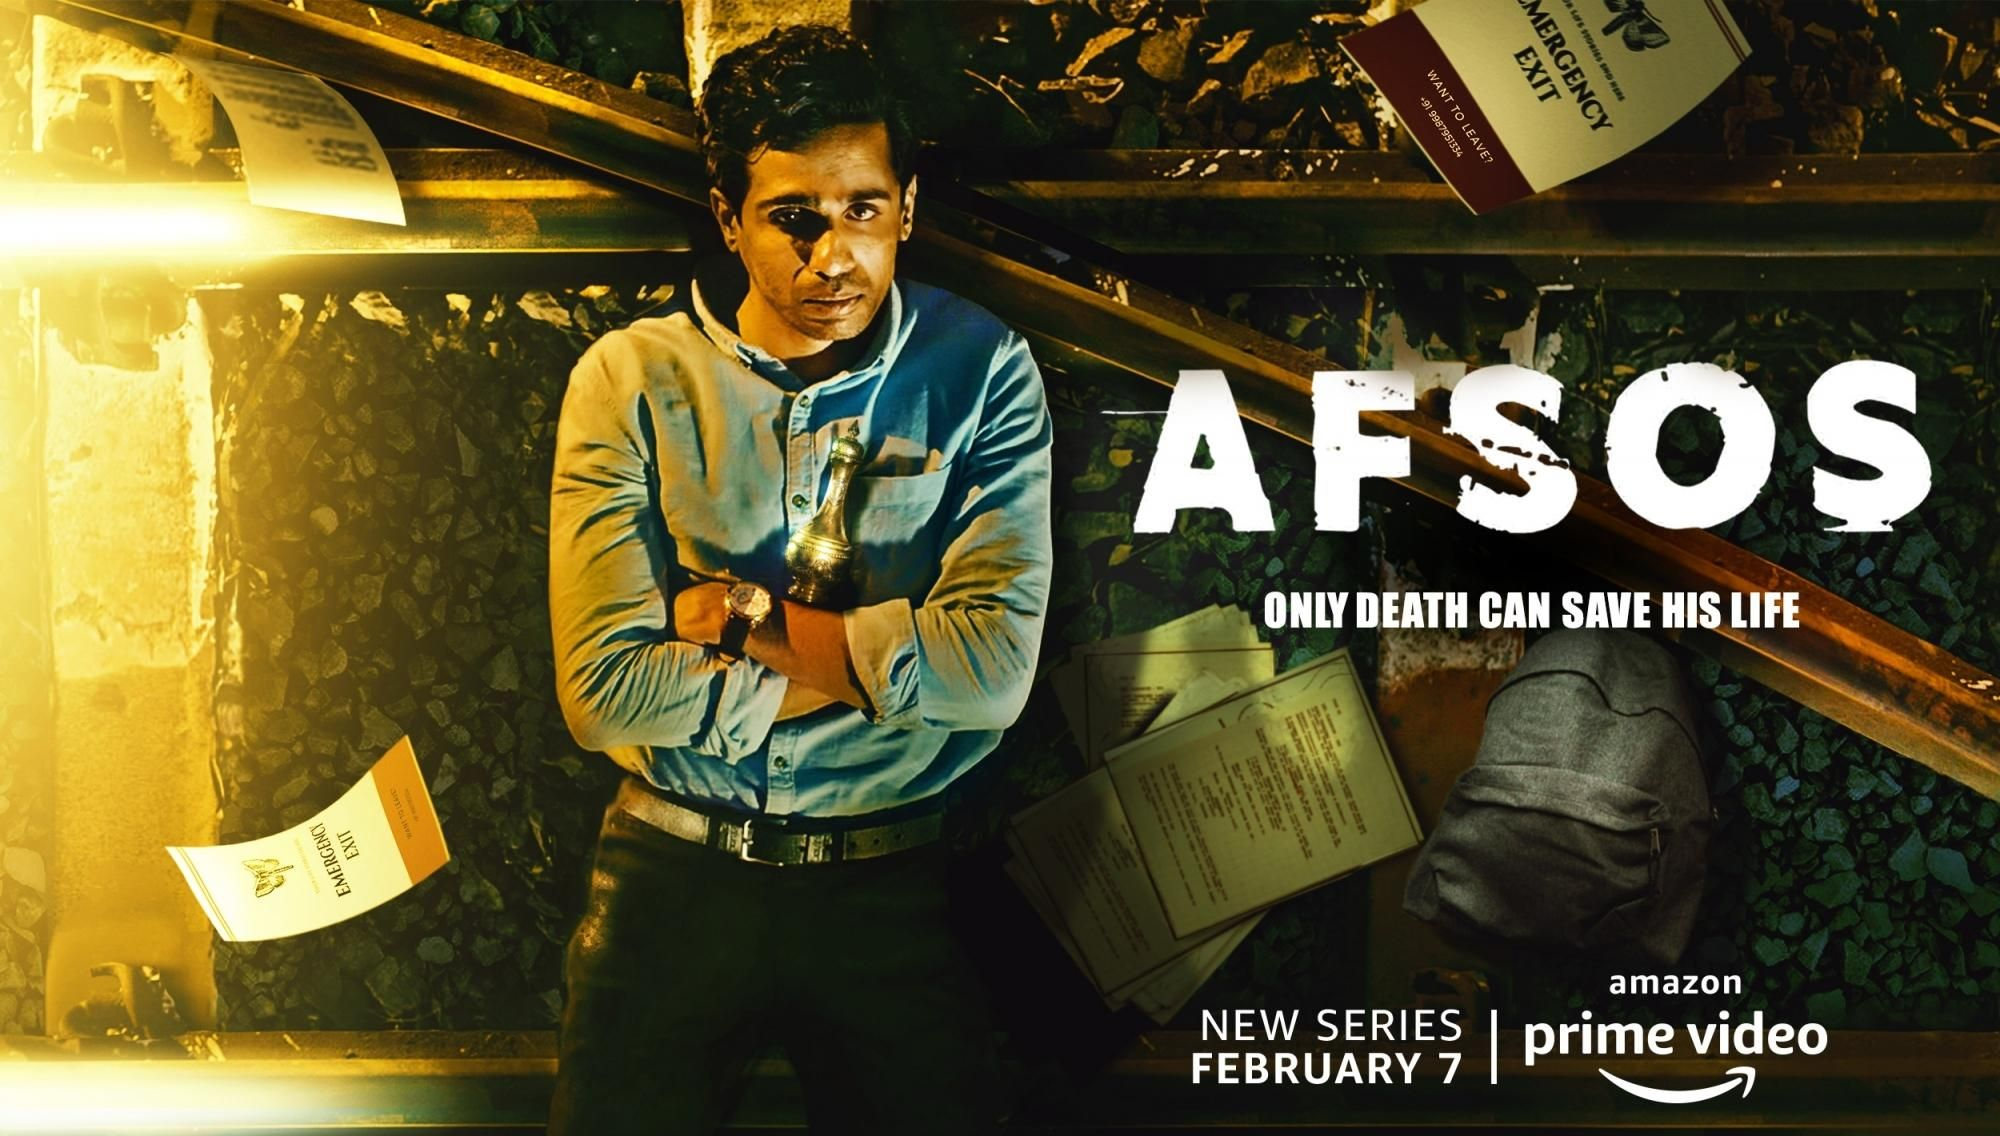 'Afsos' title track comes with a message Creator in 2020